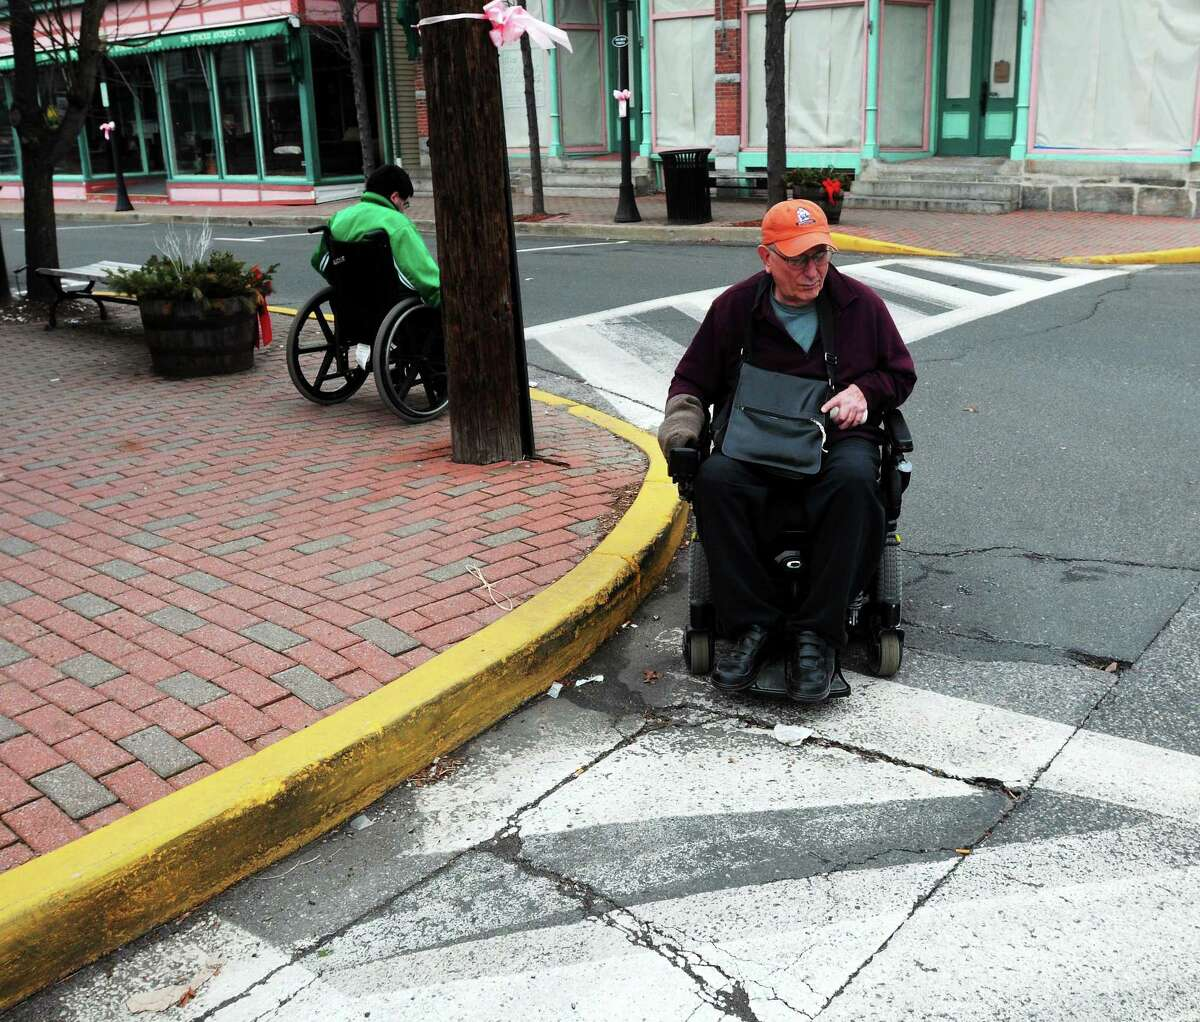 Kevin Galligan of North Branford and Joseph Luciano of Seymour deal with a crosswalk that has no curb cut to it in downtown Seymour in this January 2013 file photo.